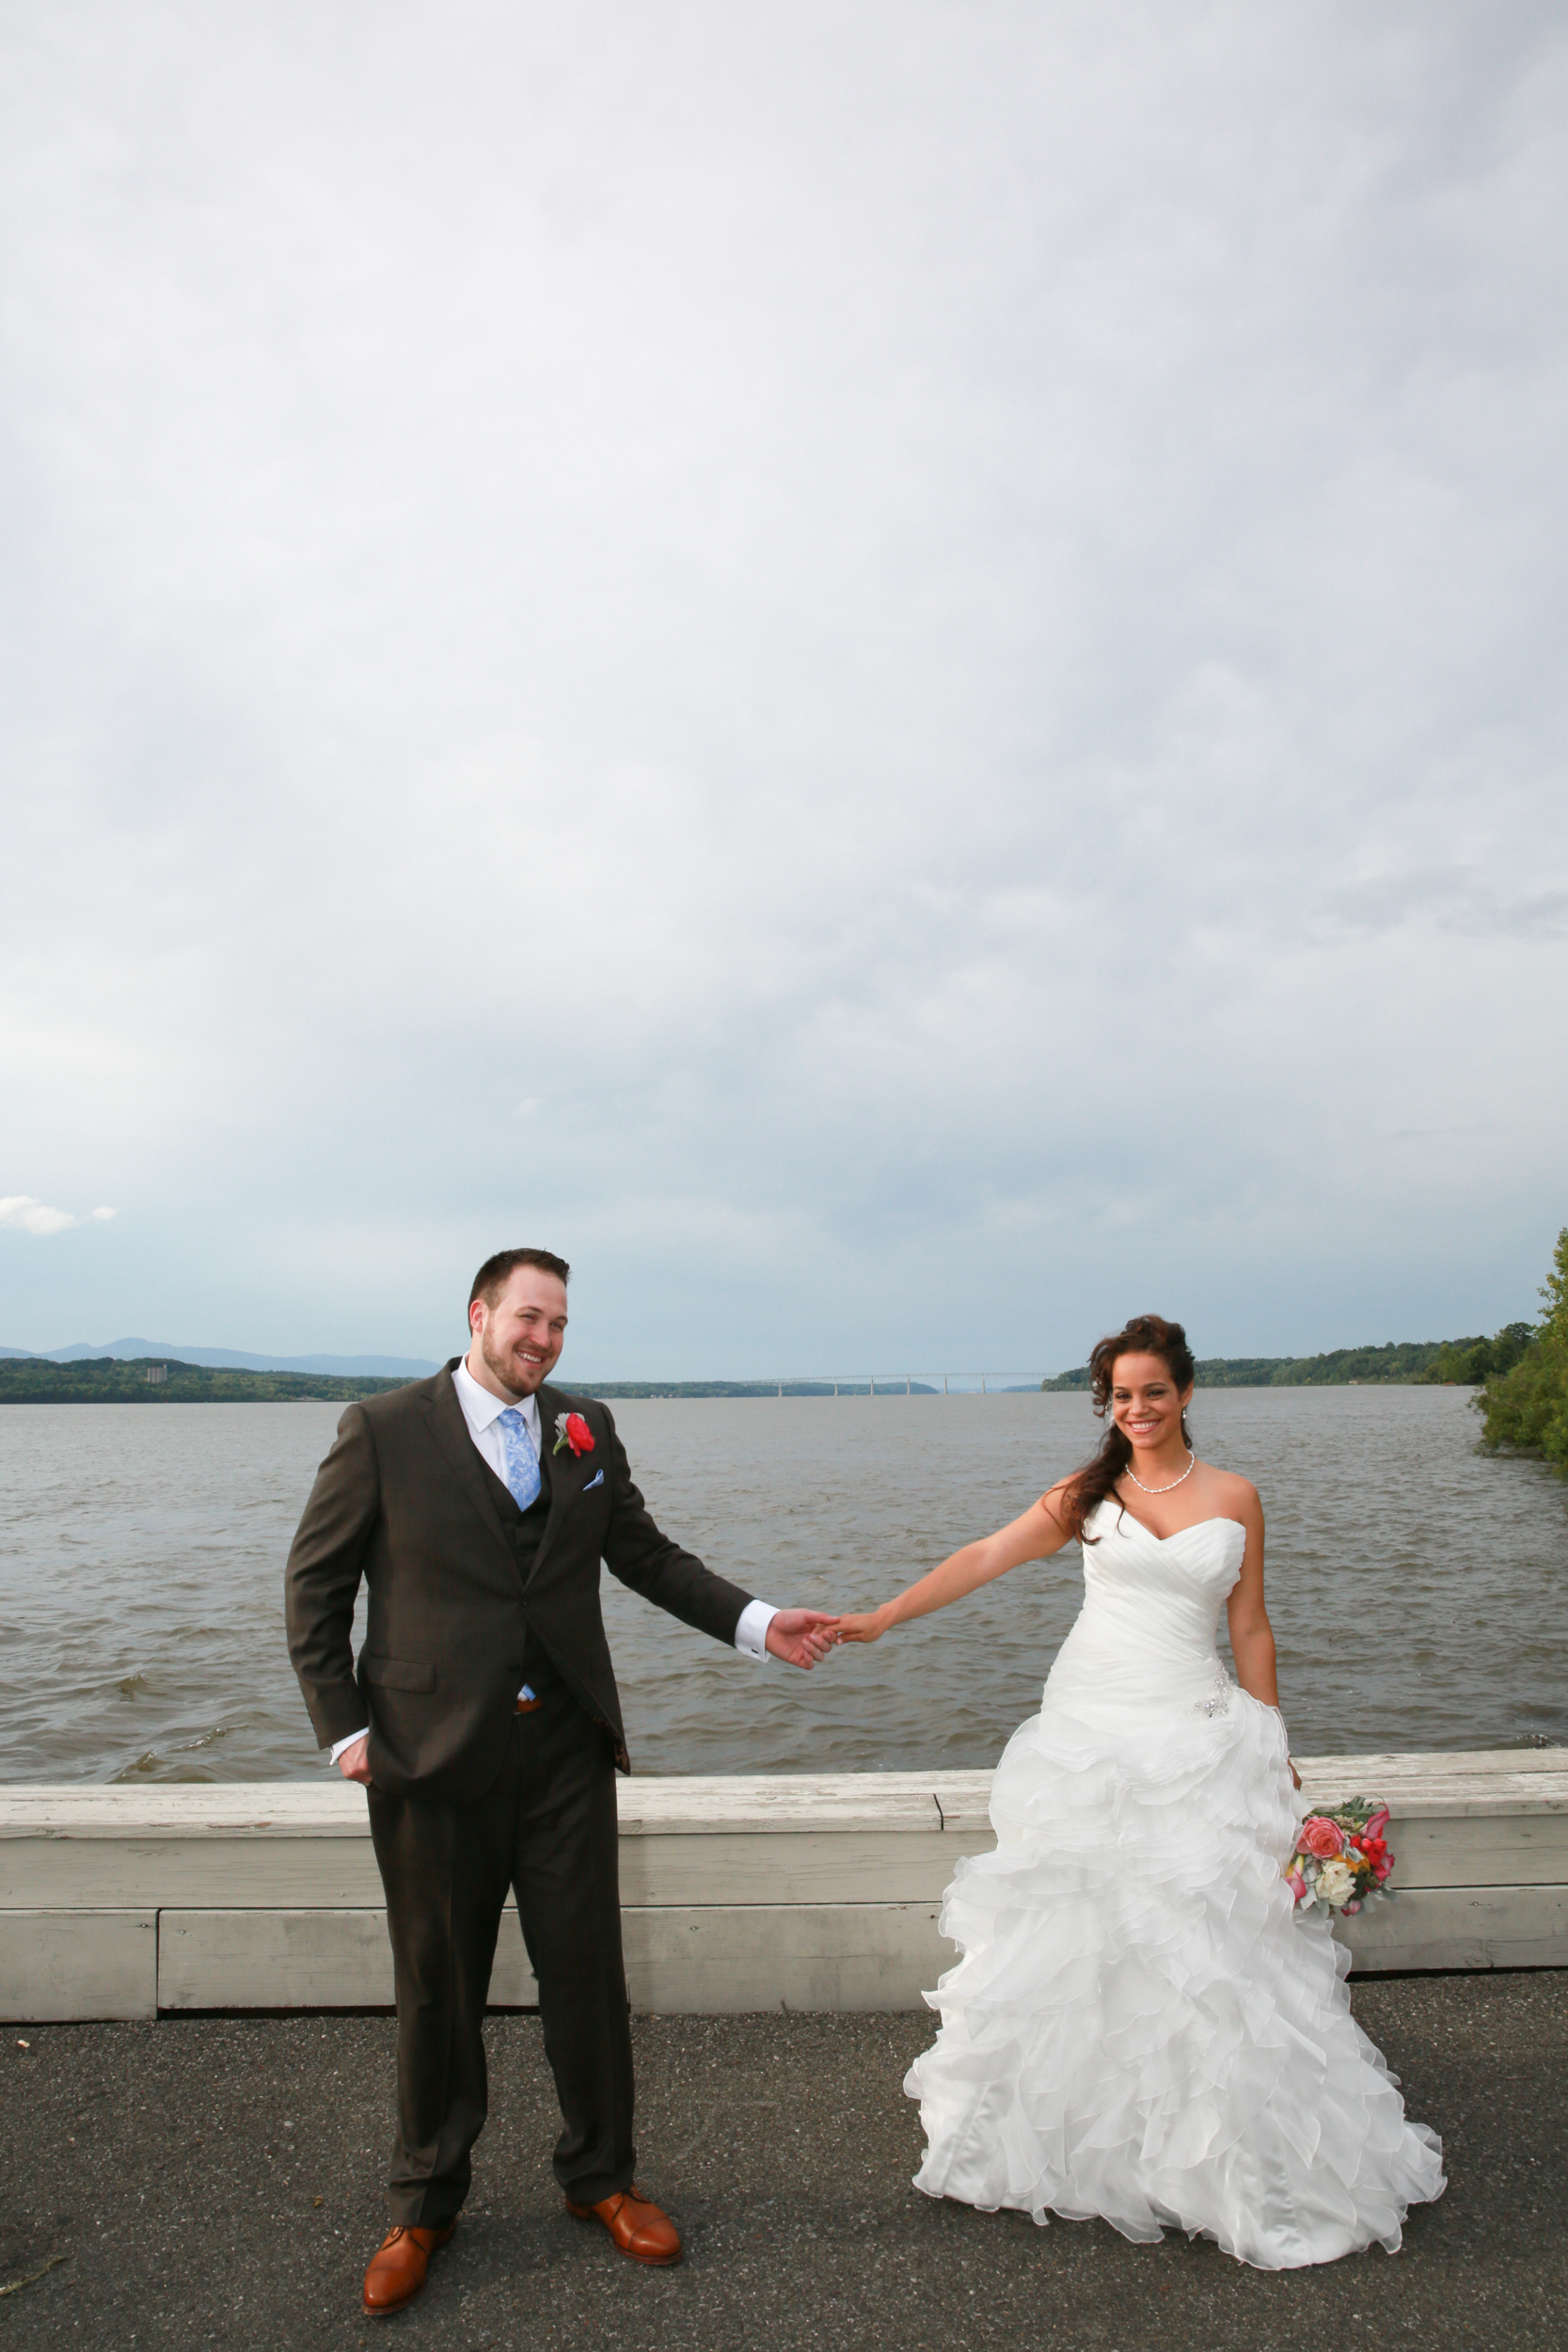 Bride and Groom holding hands at the Hudson River